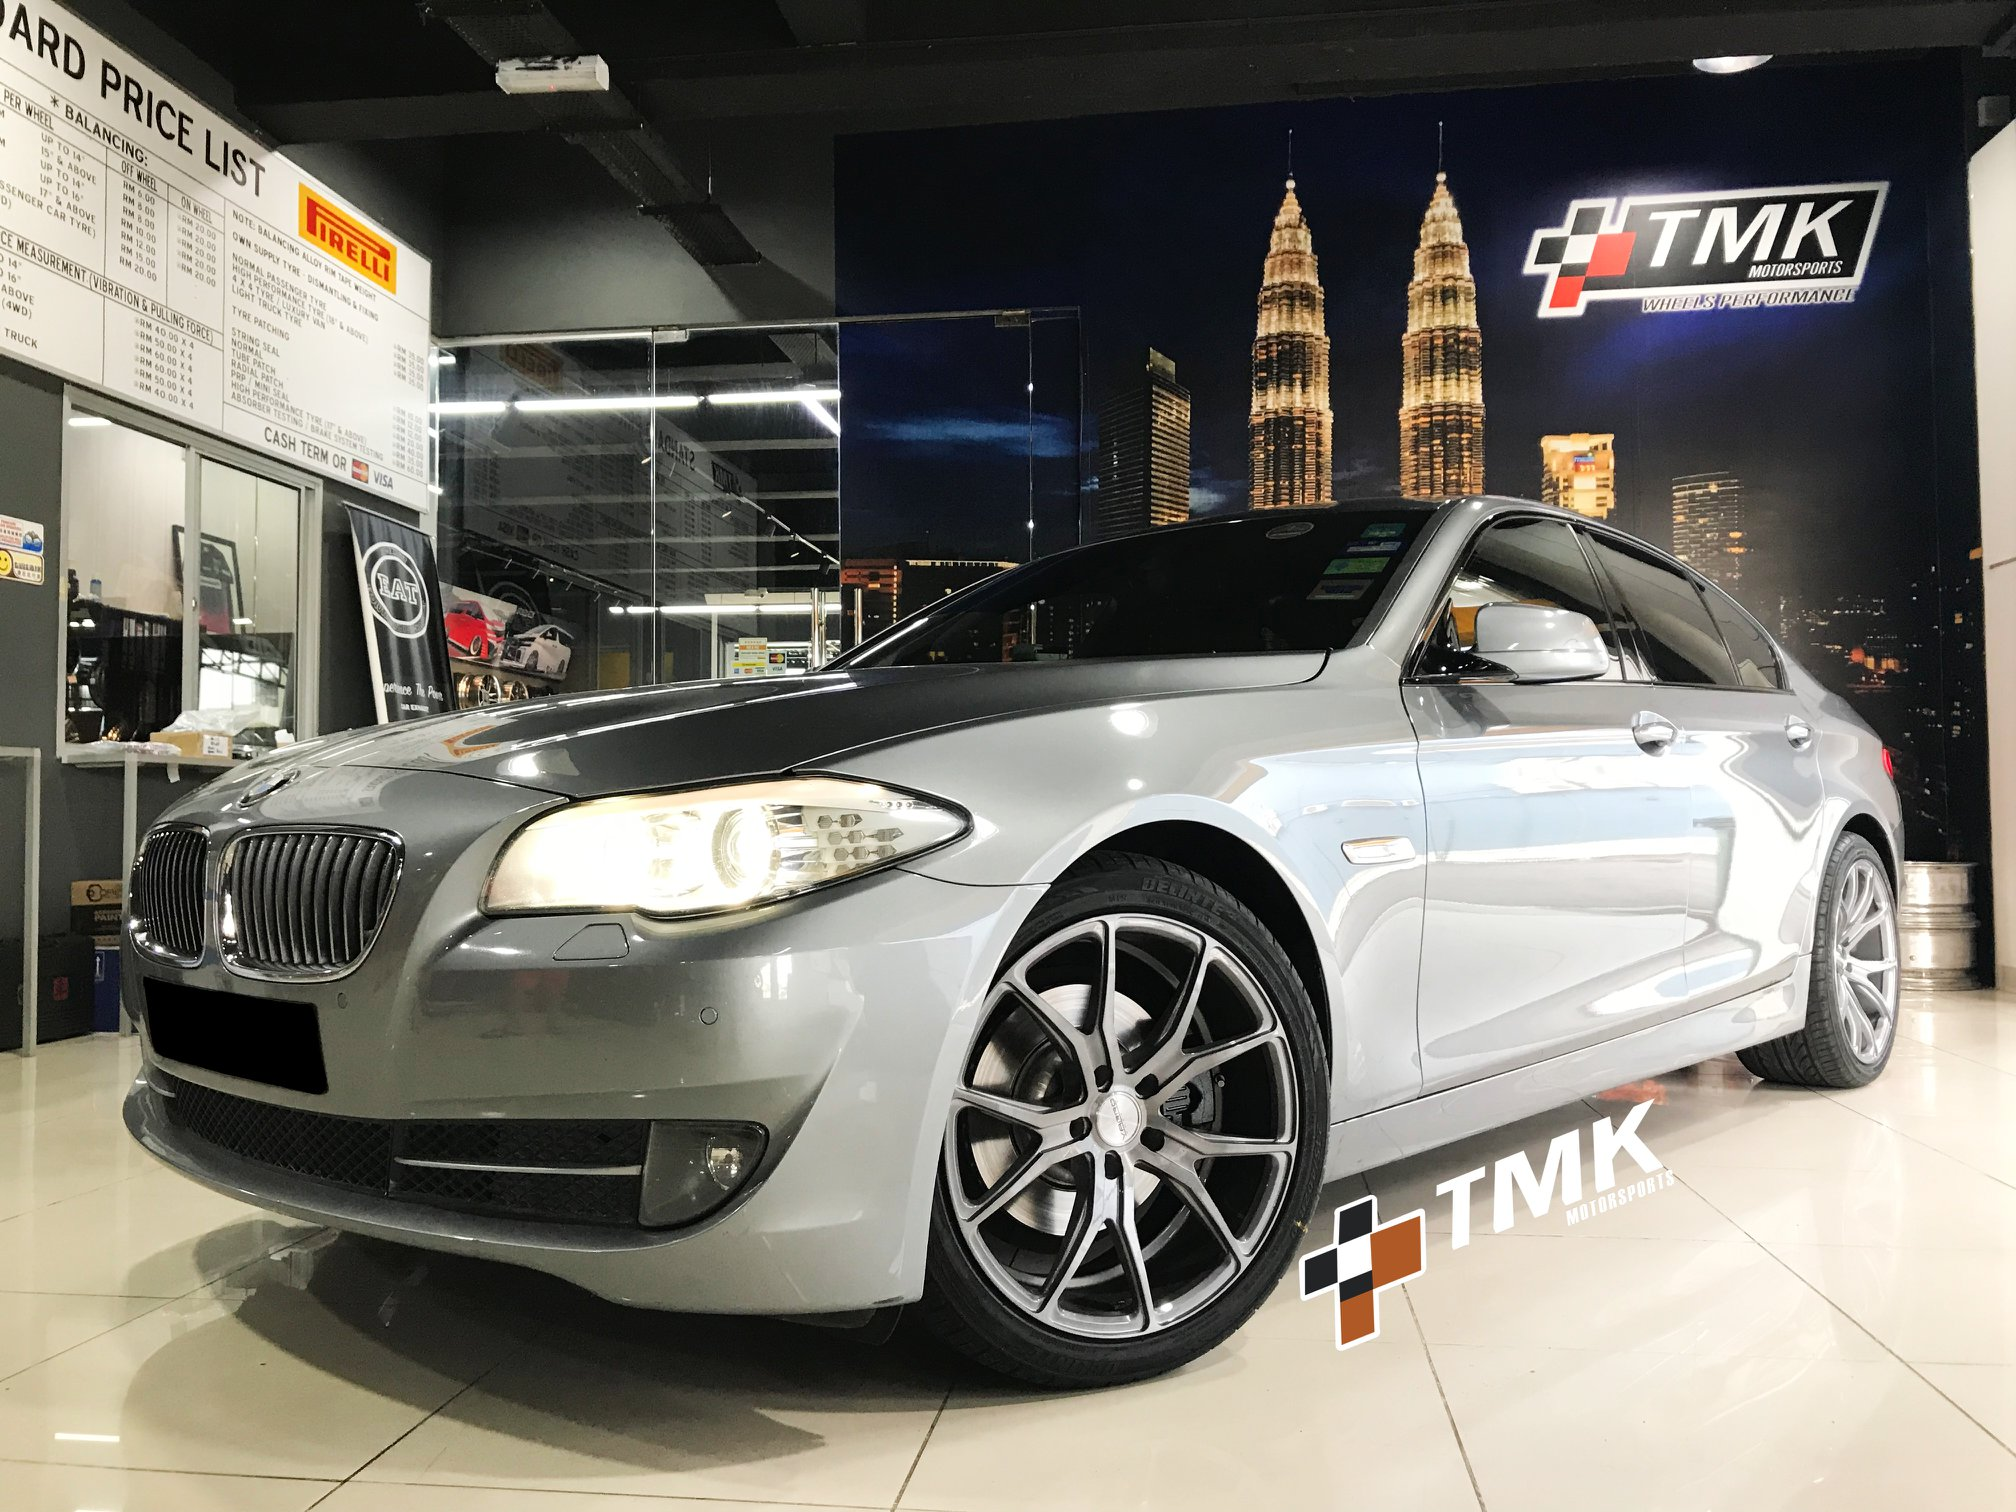 BMW 5 Series Silver Rims Varro Staggered Concave Silver Wheels